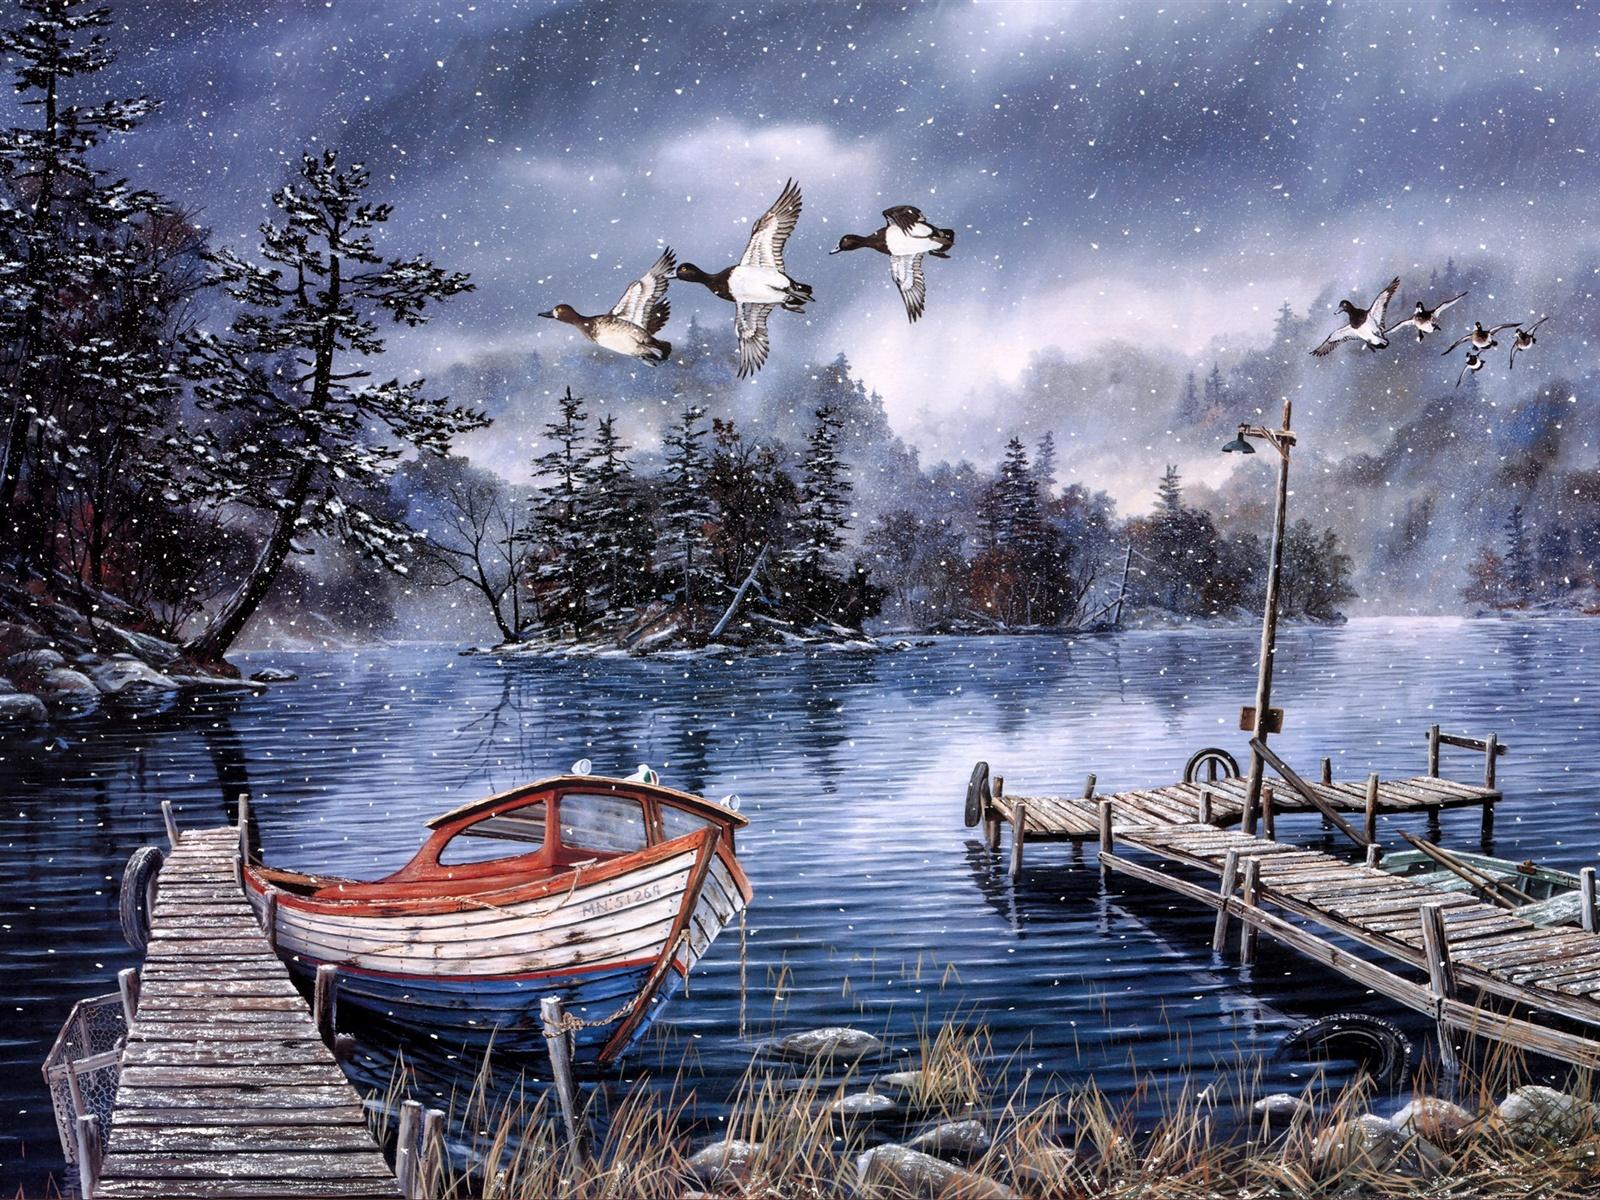 Best Iphone 6s Wallpapers Hd Wallpaper Watercolor Painting Lake And Woods Snow Winter